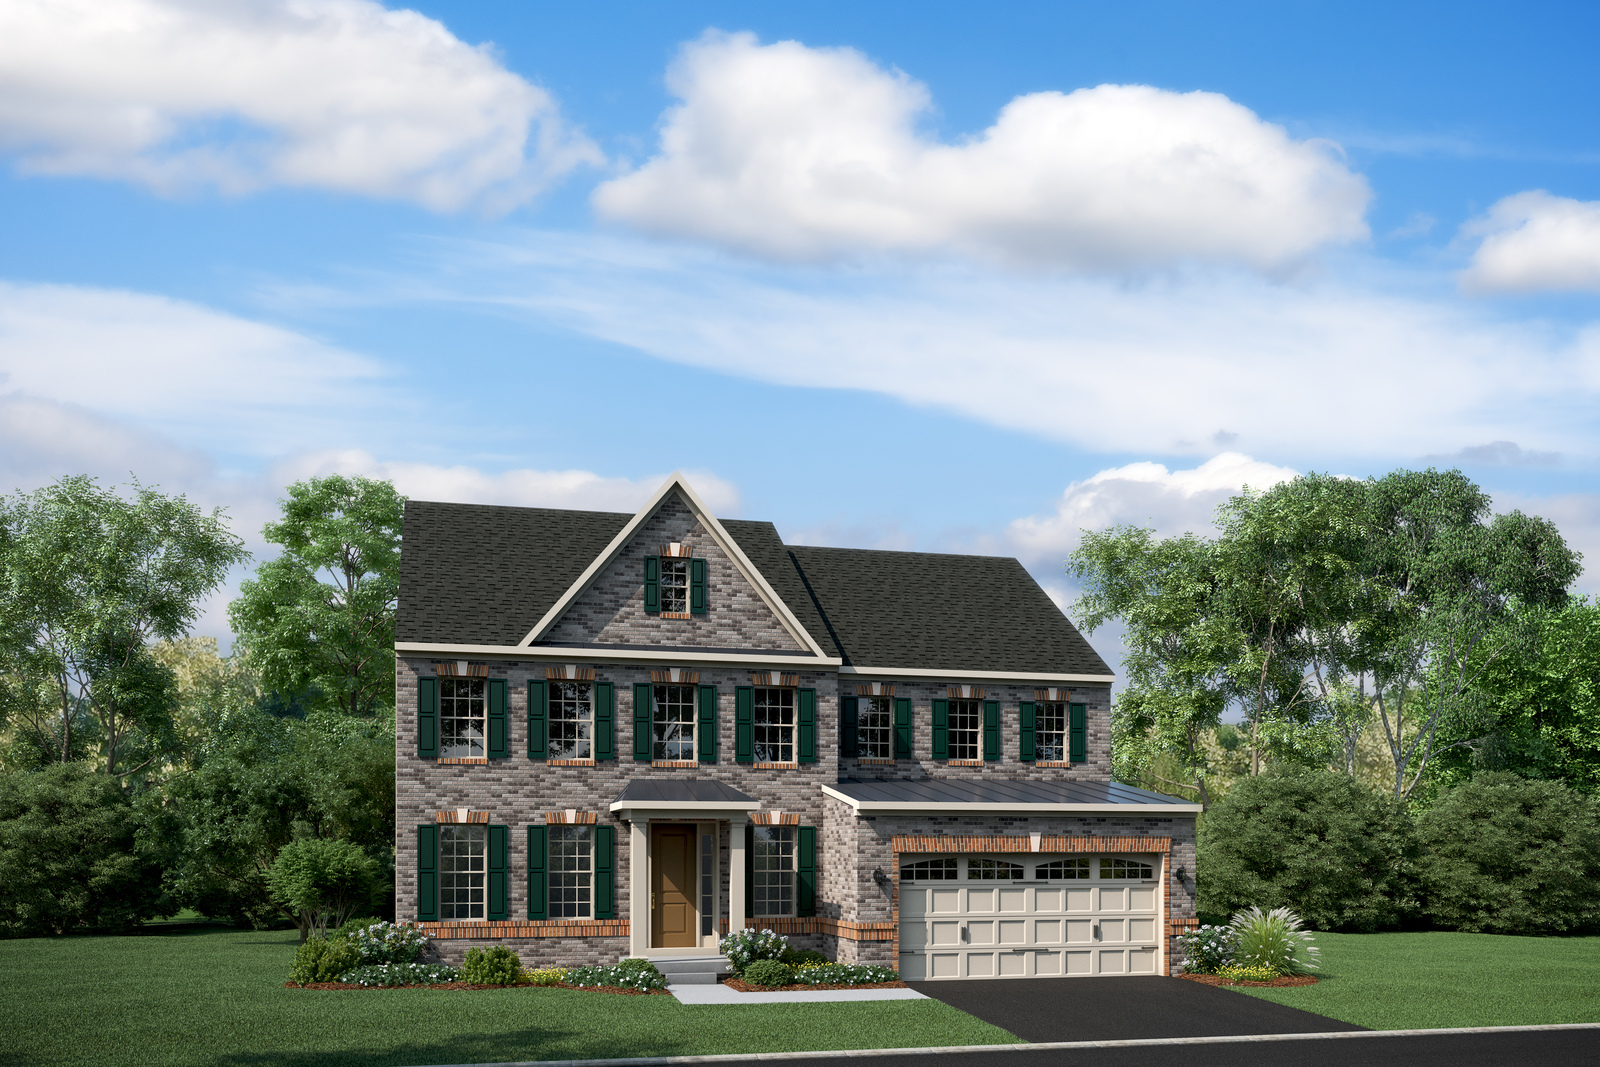 New longwood home model for sale heartland homes for Heartland homes pittsburgh floor plans